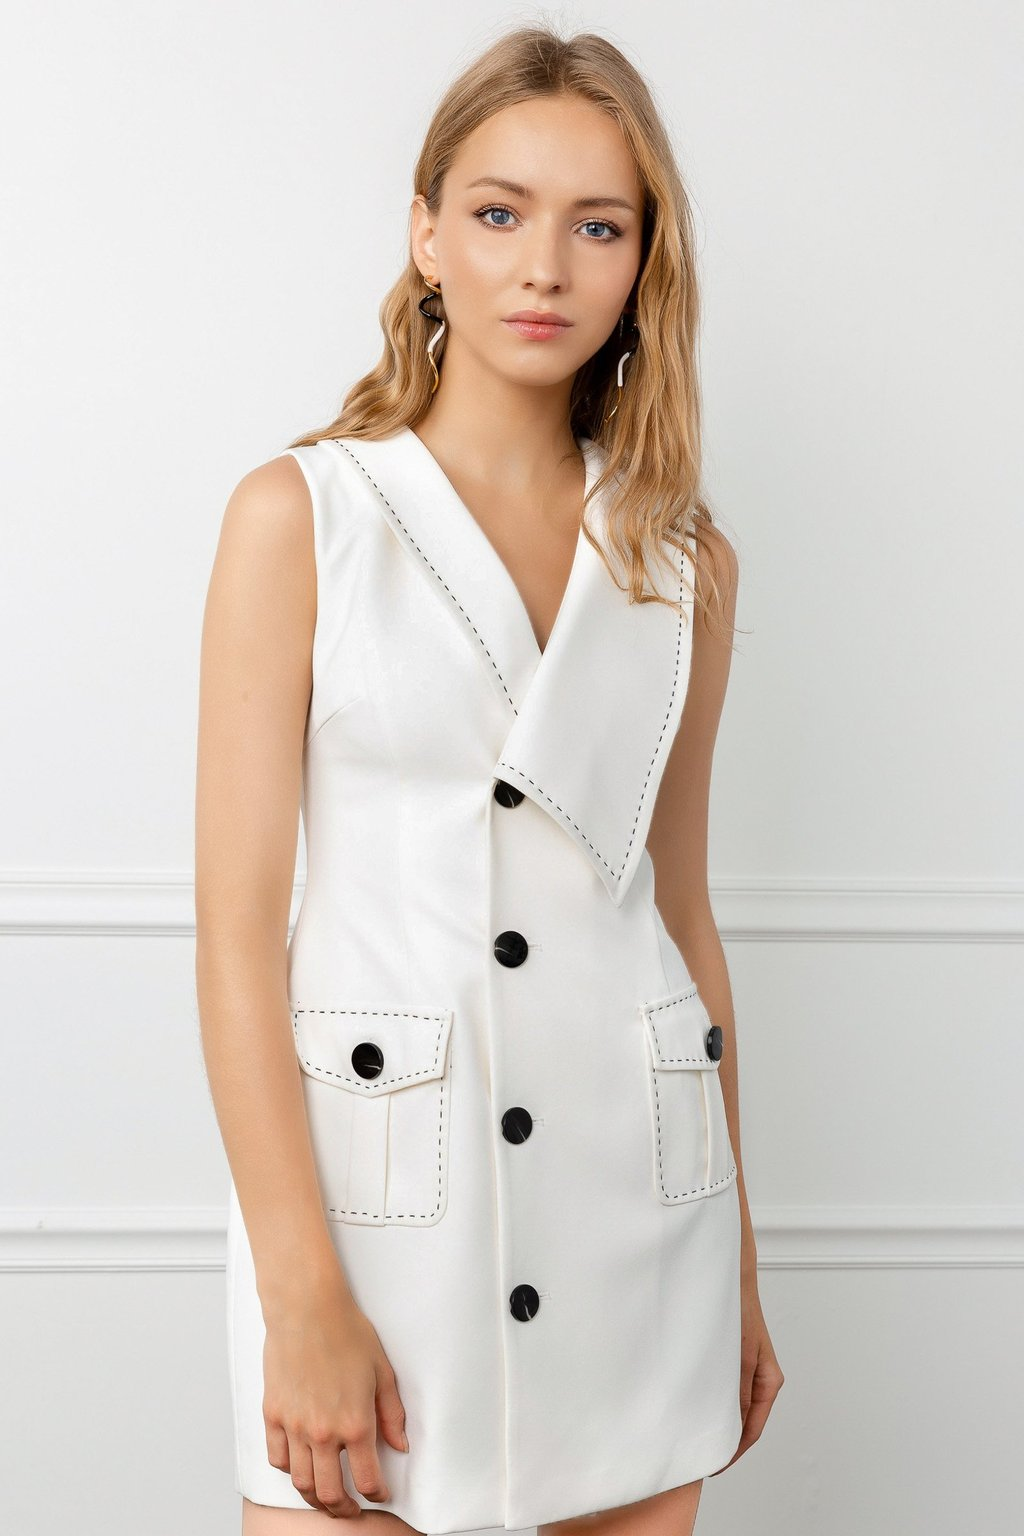 White Sailor Dress and Kensington Earrings by J.ING women's fashion and accessories